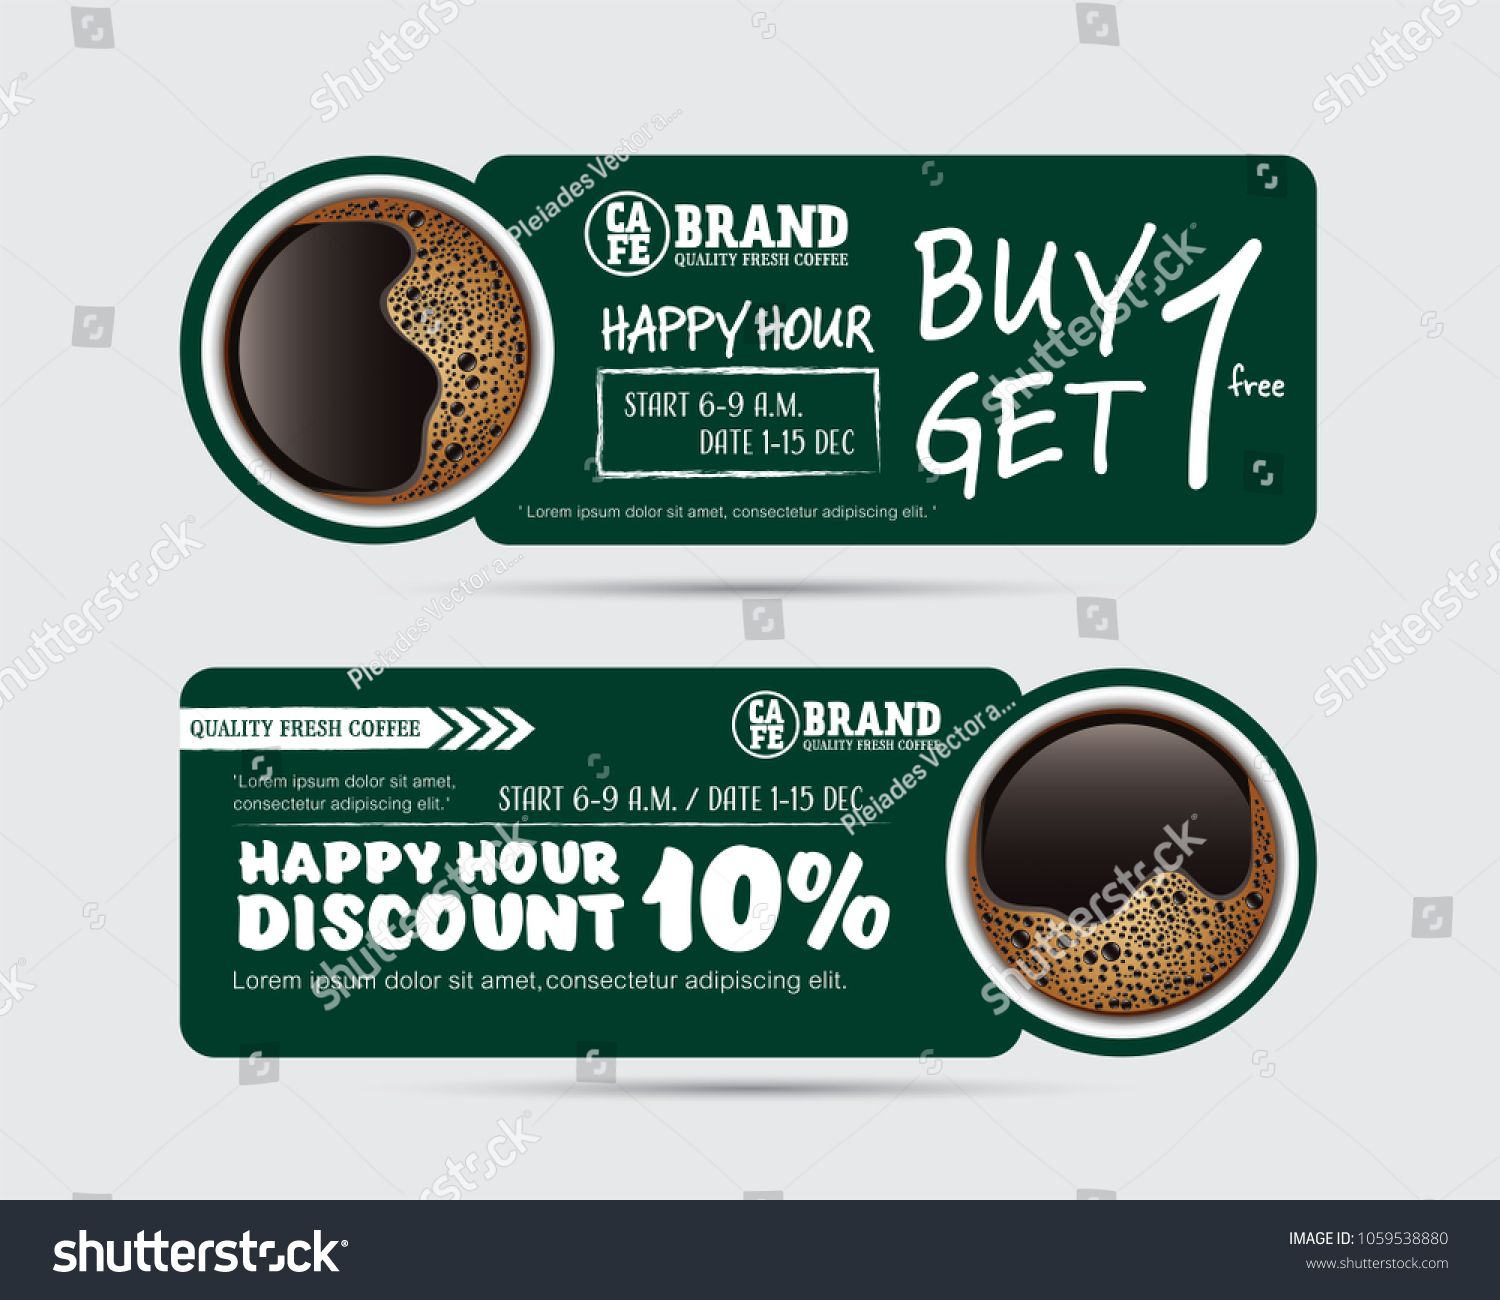 Vector Illustration Gift Voucher Coupon Cafe Coffee Beverage Buy